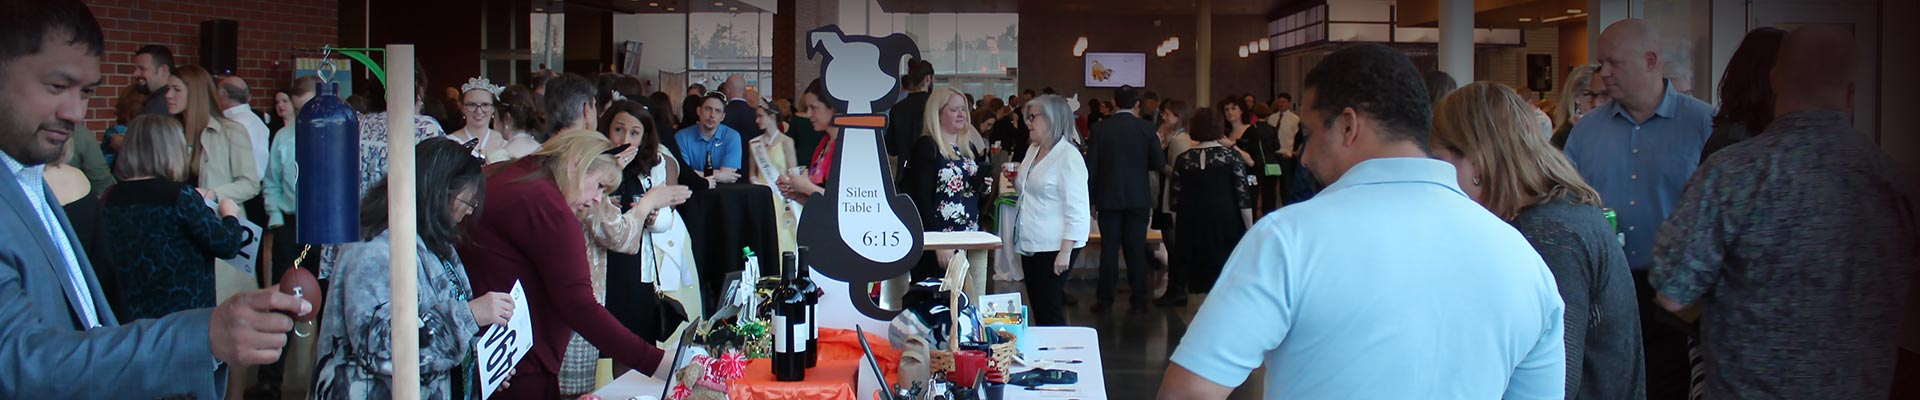 Whiskers Wine and Dine hero image from event 2018